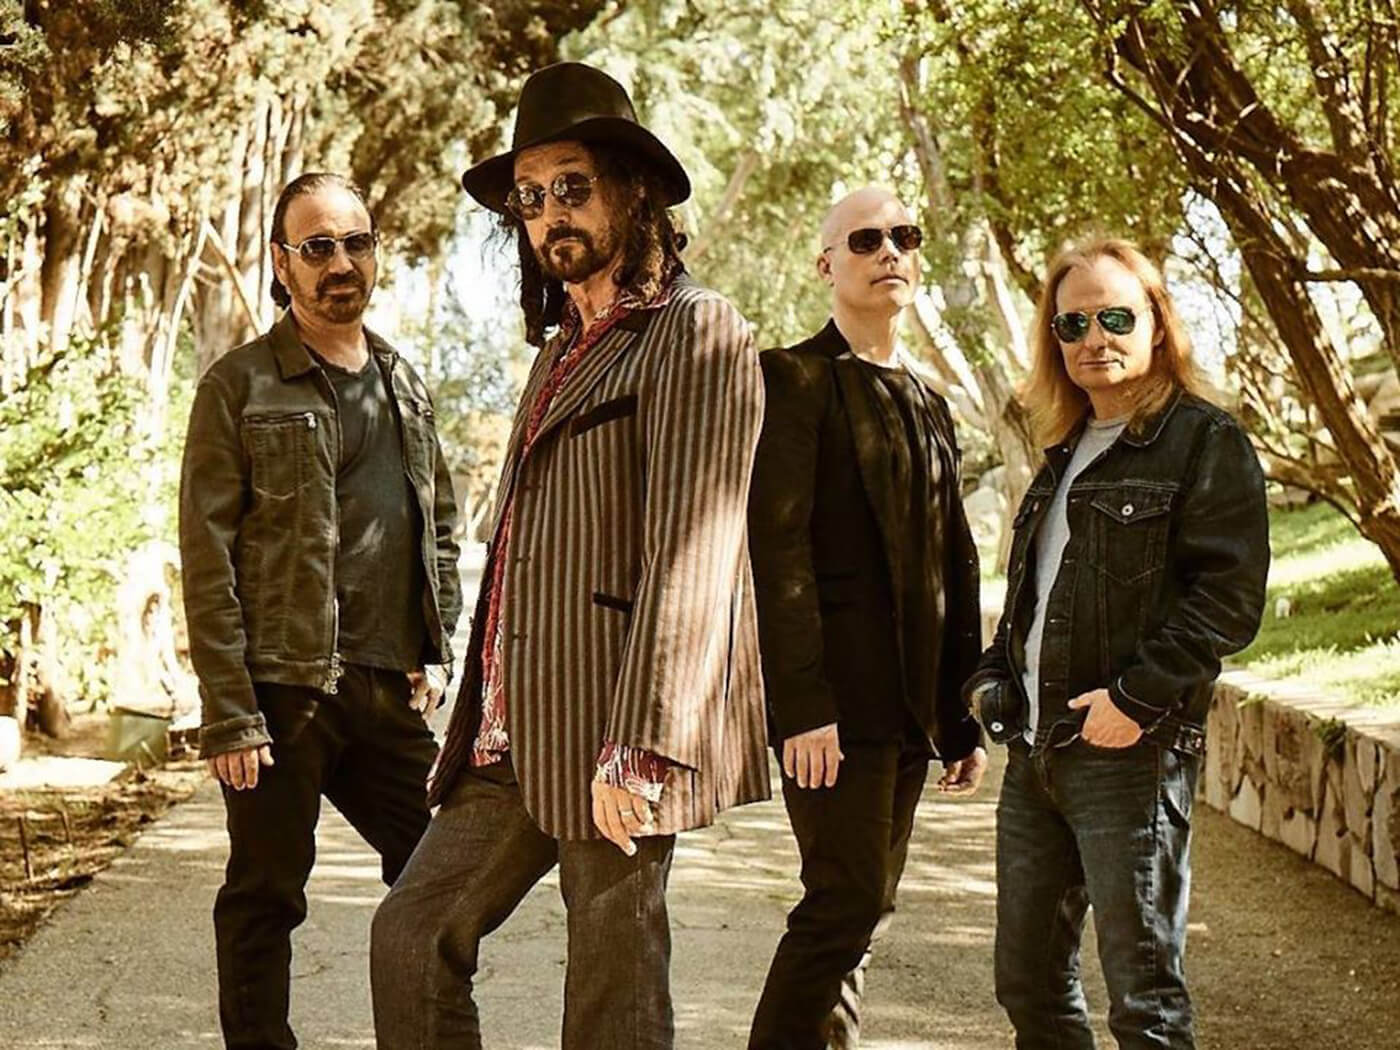 Mike Campbell talks Fleetwood Mac and new band, The Dirty Knobs - UNCUT